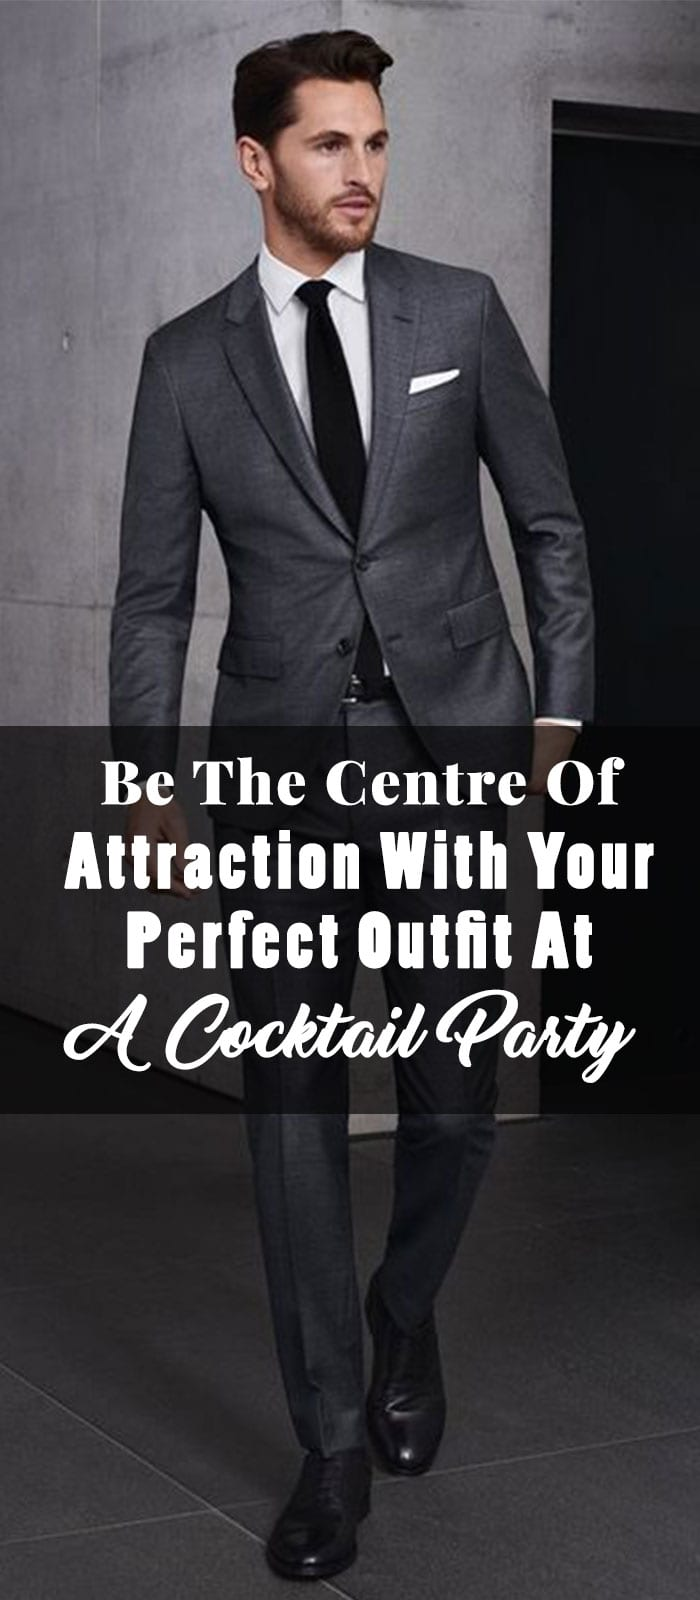 Be The Centre Of Attraction With Your Perfect Outfit At A Cocktail Party